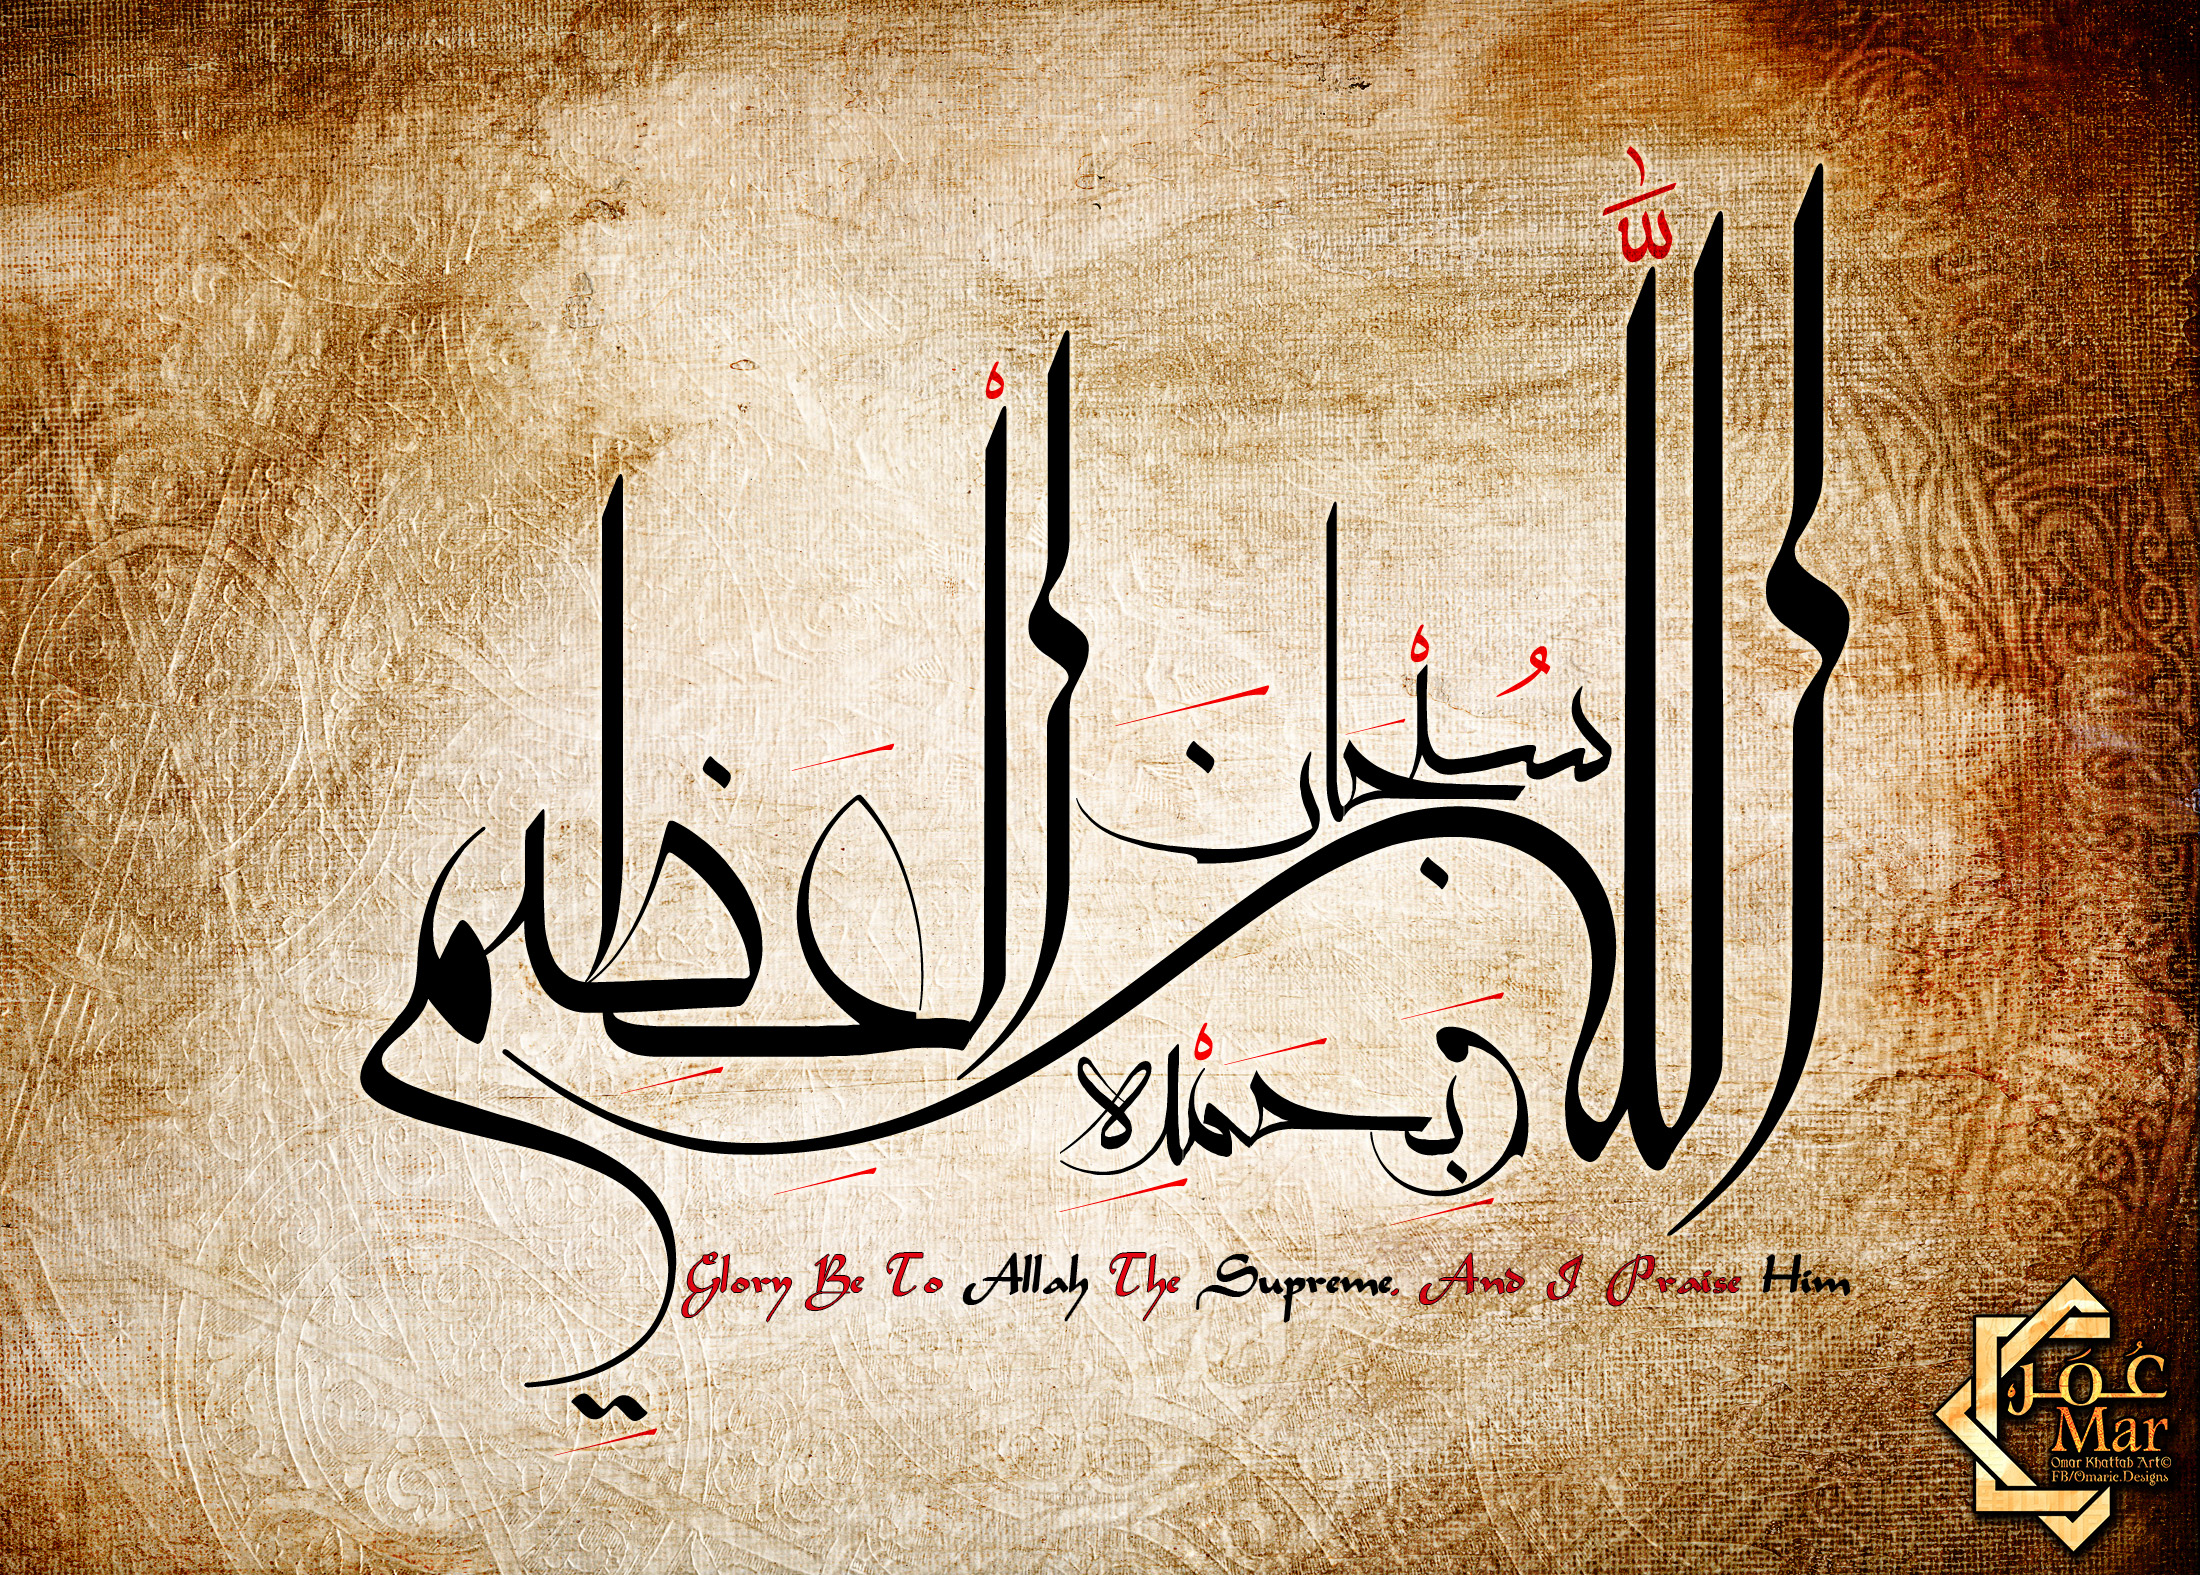 Subhan 39 allah by omar khattab on deviantart Allah calligraphy wallpaper